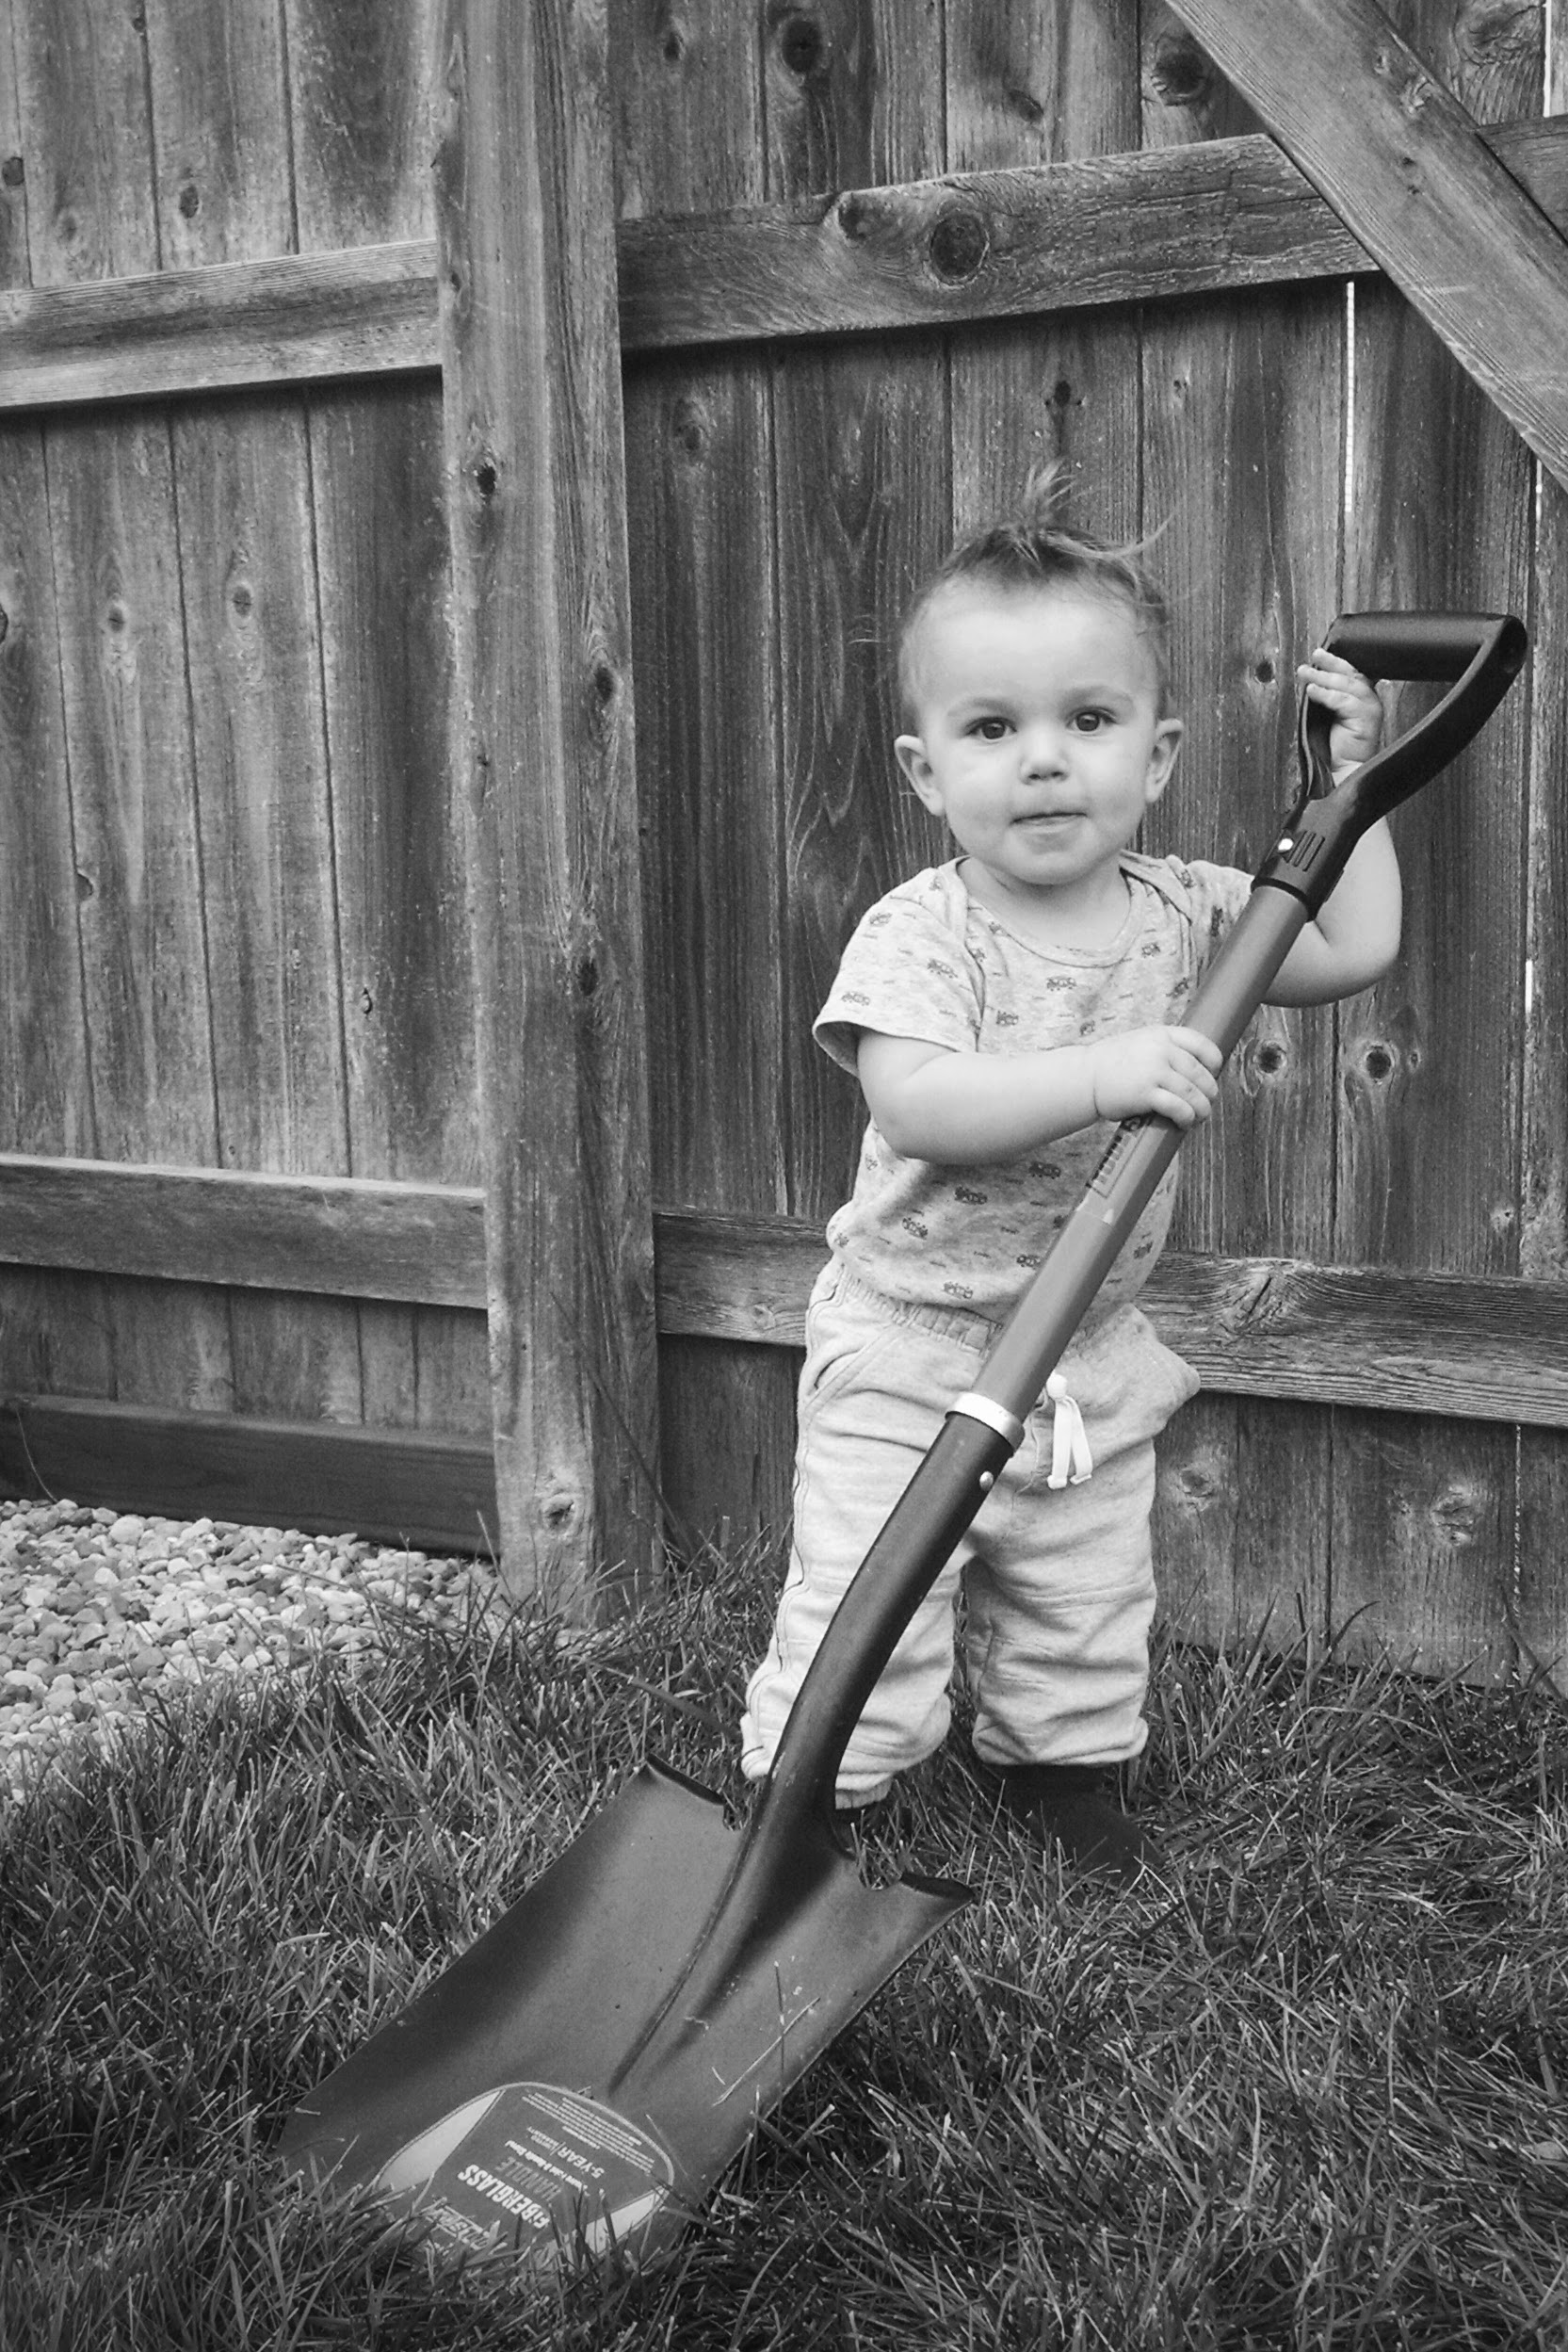 Ryker doing yard work at Grandma and Grandpa's